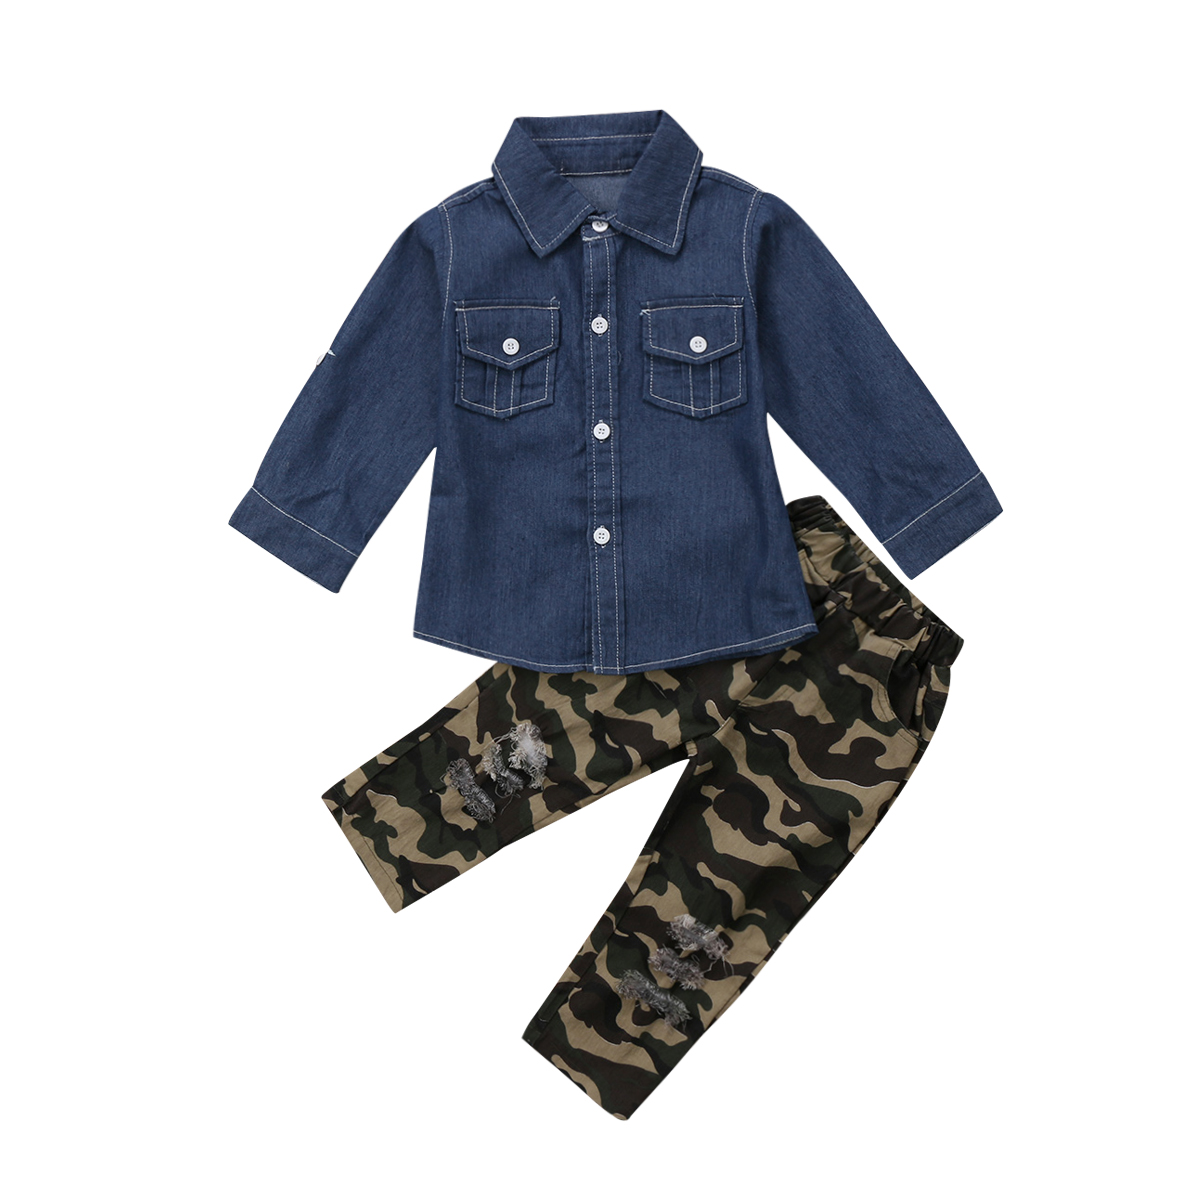 31233569e15e7 Online Shop Toddler Girls Clothing Denim Shirt Top Camoufalge Pants  Leggings Clothes Outfit Set 1-7T | Aliexpress Mobile